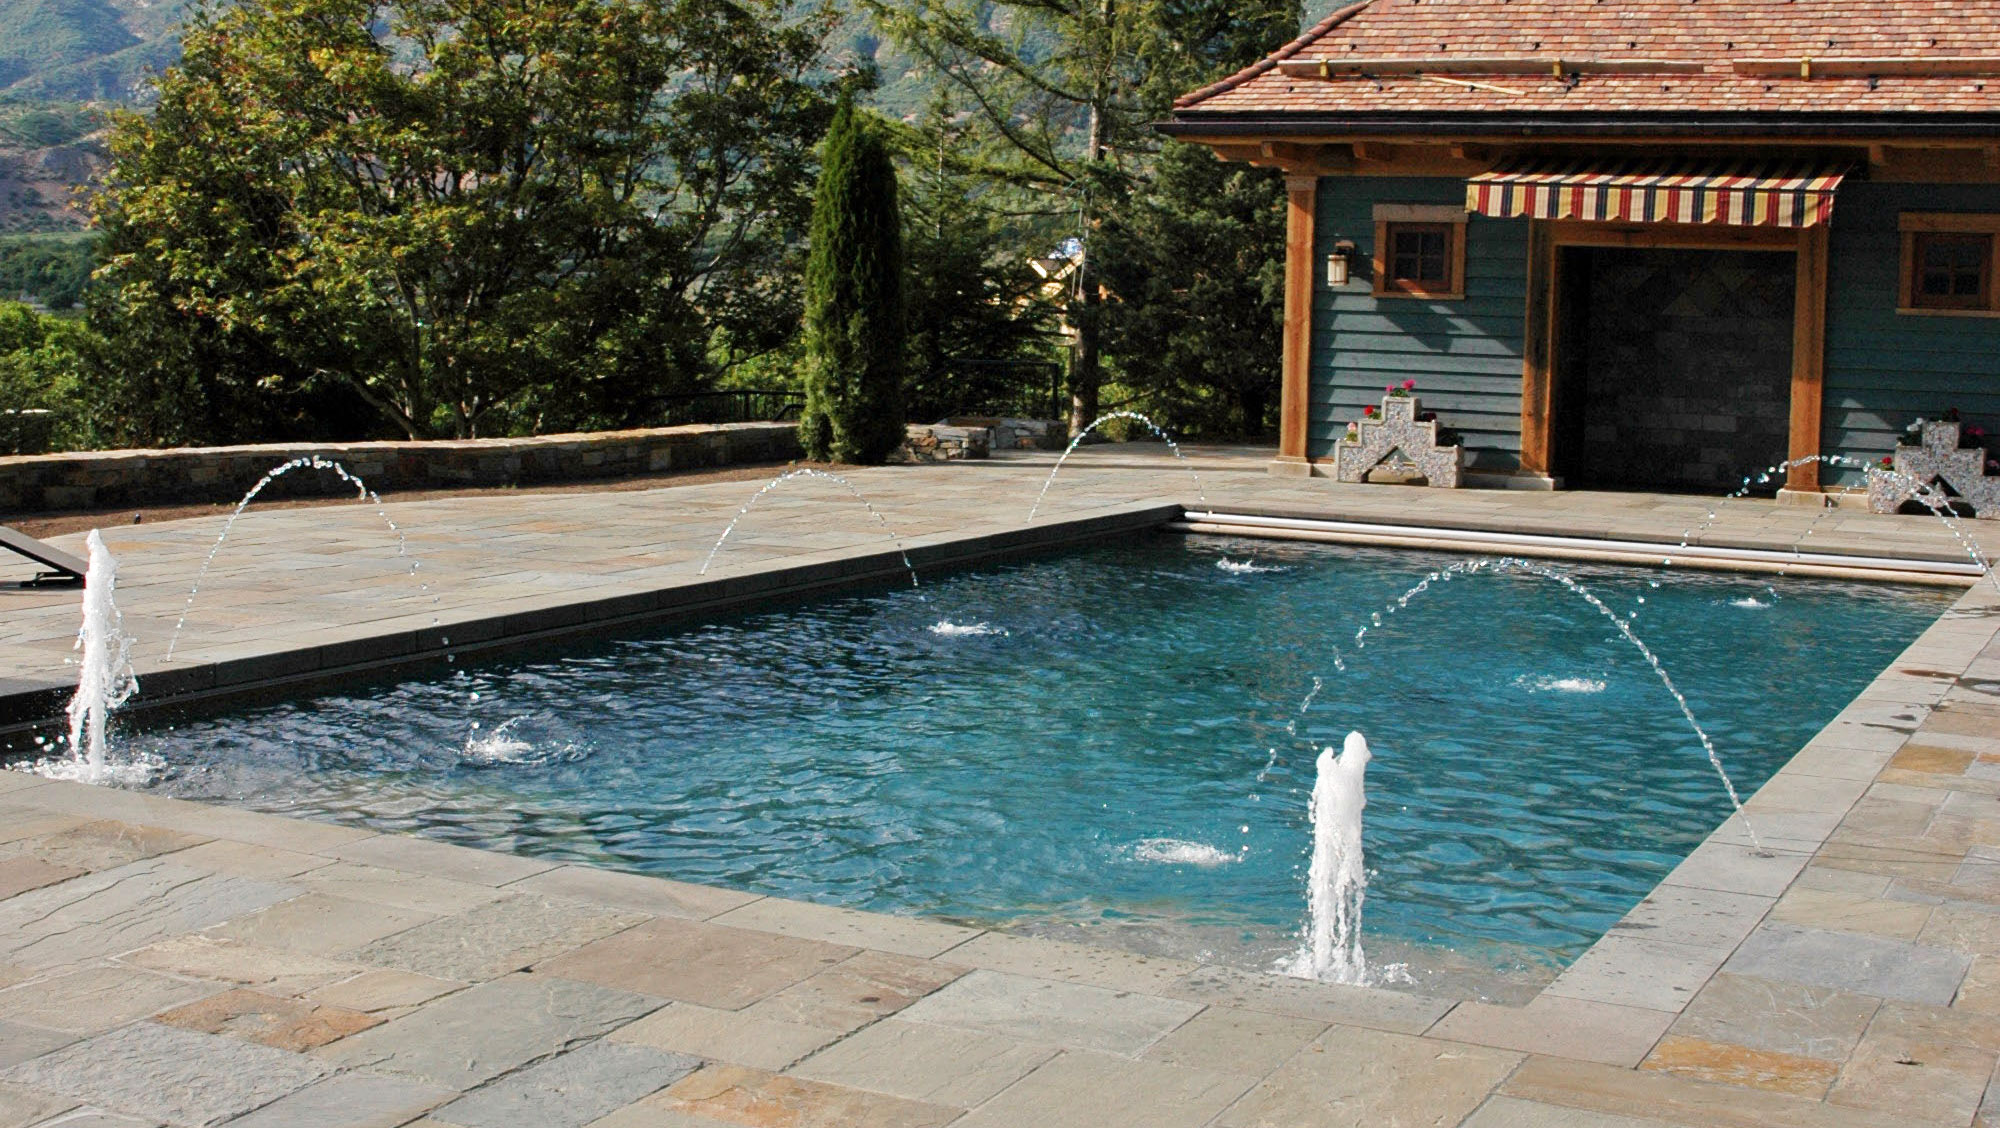 Pool Building Tips : Tips for designing the perfect pool dolphin pools spas